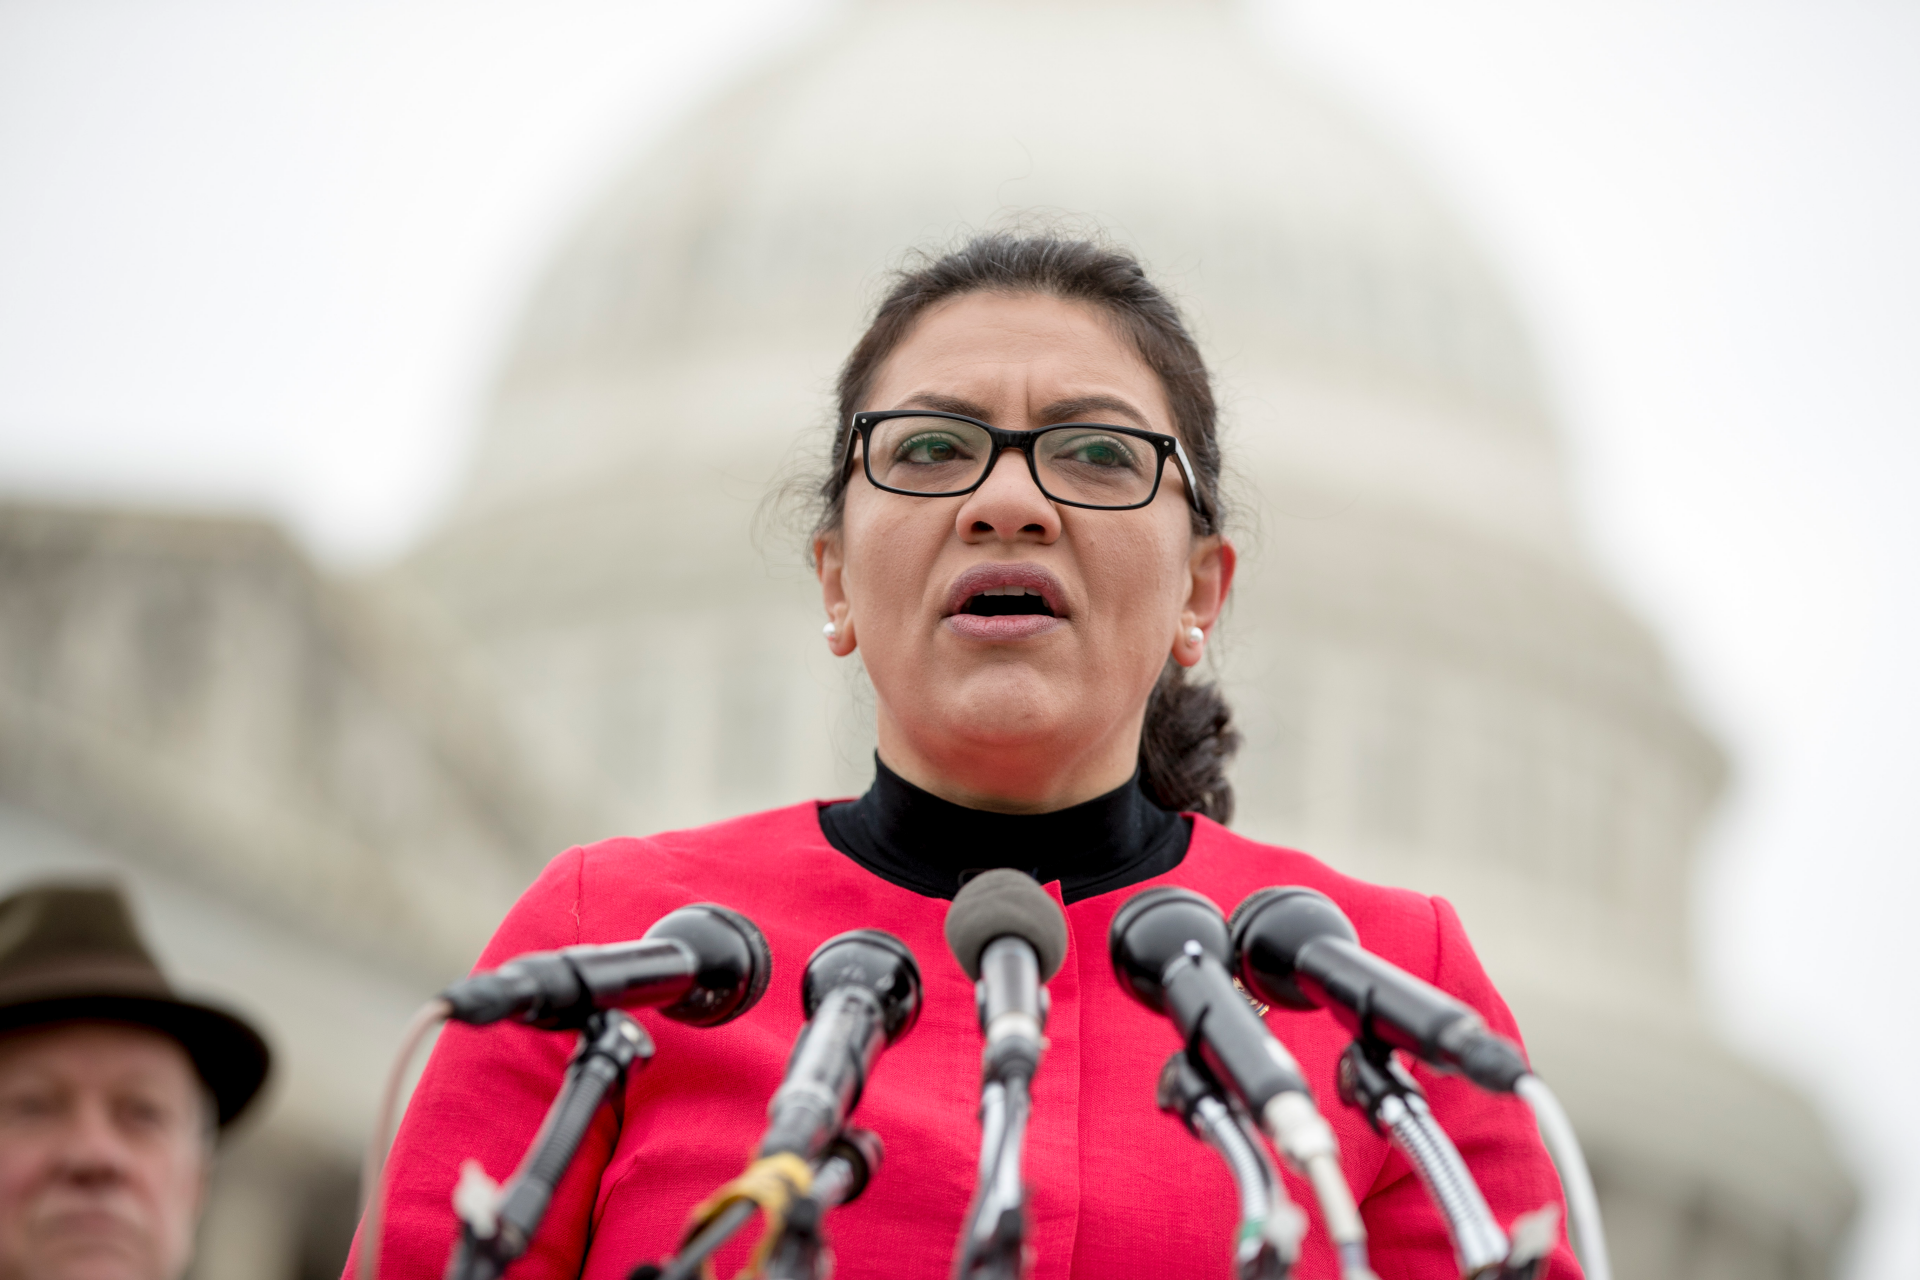 Westlake Legal Group ContentBroker_contentid-79b19ae511294f45be28ec85d8010aec Ben Shapiro: Rep Tlaib 'part of an anti-Semitic contingent' protected by Democratic leadership Victor Garcia fox-news/topic/fox-news-flash fox-news/shows/the-story fox-news/politics/elections/house-of-representatives fox-news/politics fox news fnc/politics fnc article 4522c3f9-1347-5907-95c2-509efaaf8da1